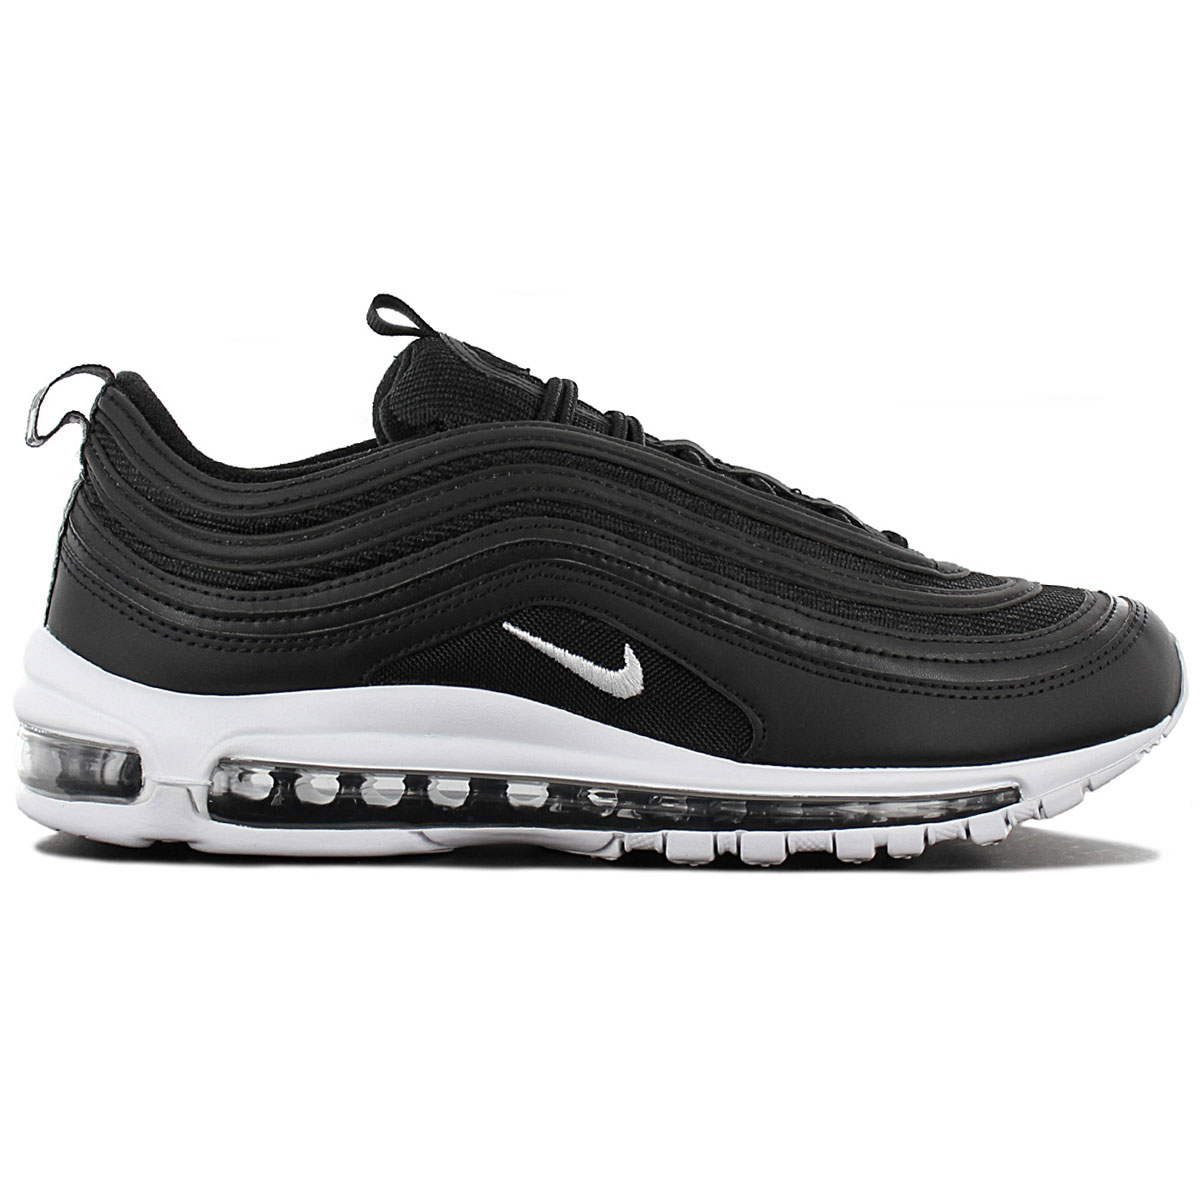 Nike Air Max 97 Sneaker black white 921826 001